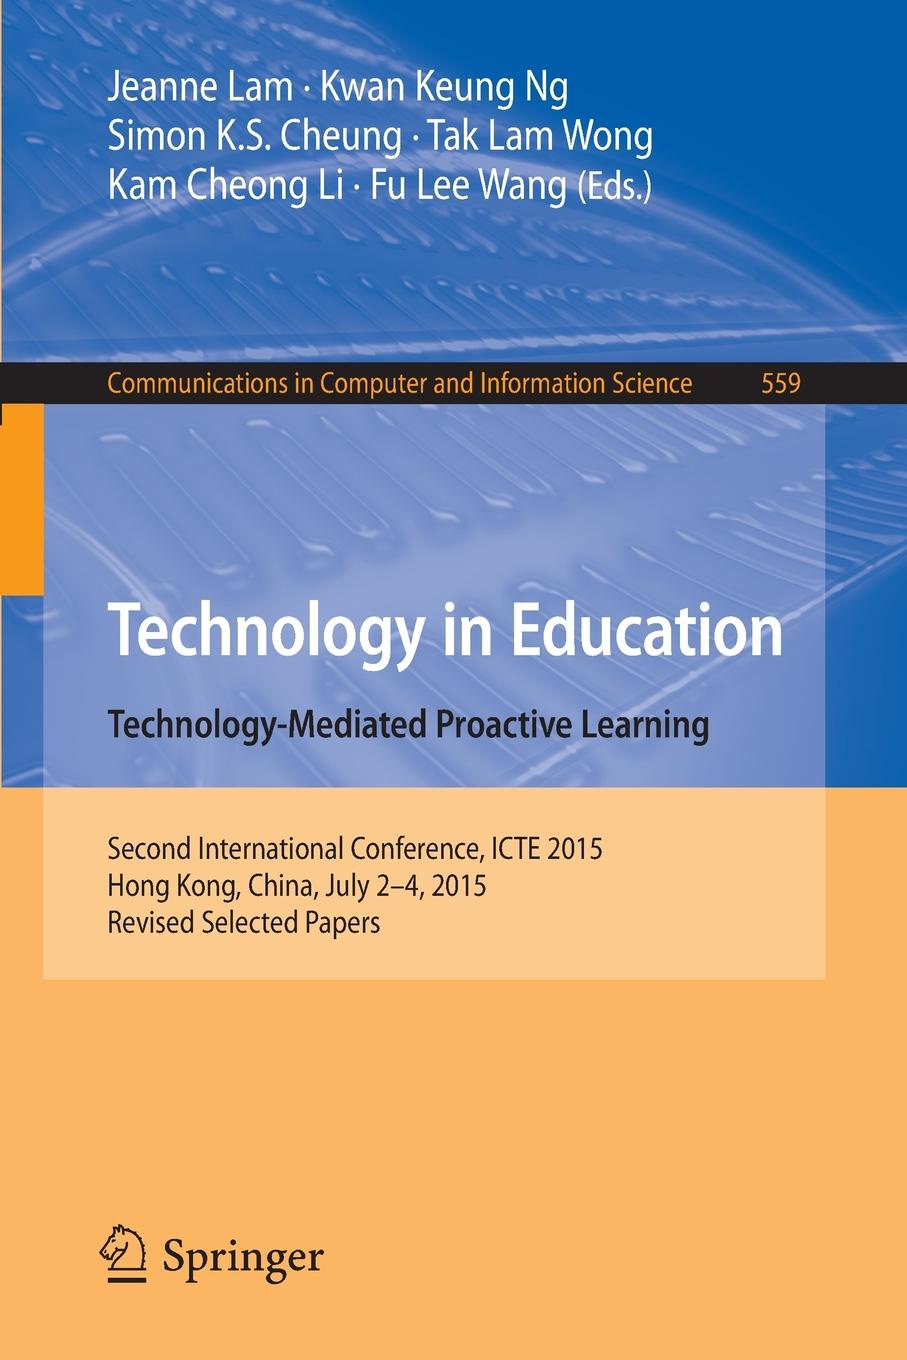 Technology in Education. Technology-Mediated Proactive Learning. Second International Conference, ICTE 2015, Hong Kong, China, July 2-4, 2015, Revised Selected Papers недорго, оригинальная цена